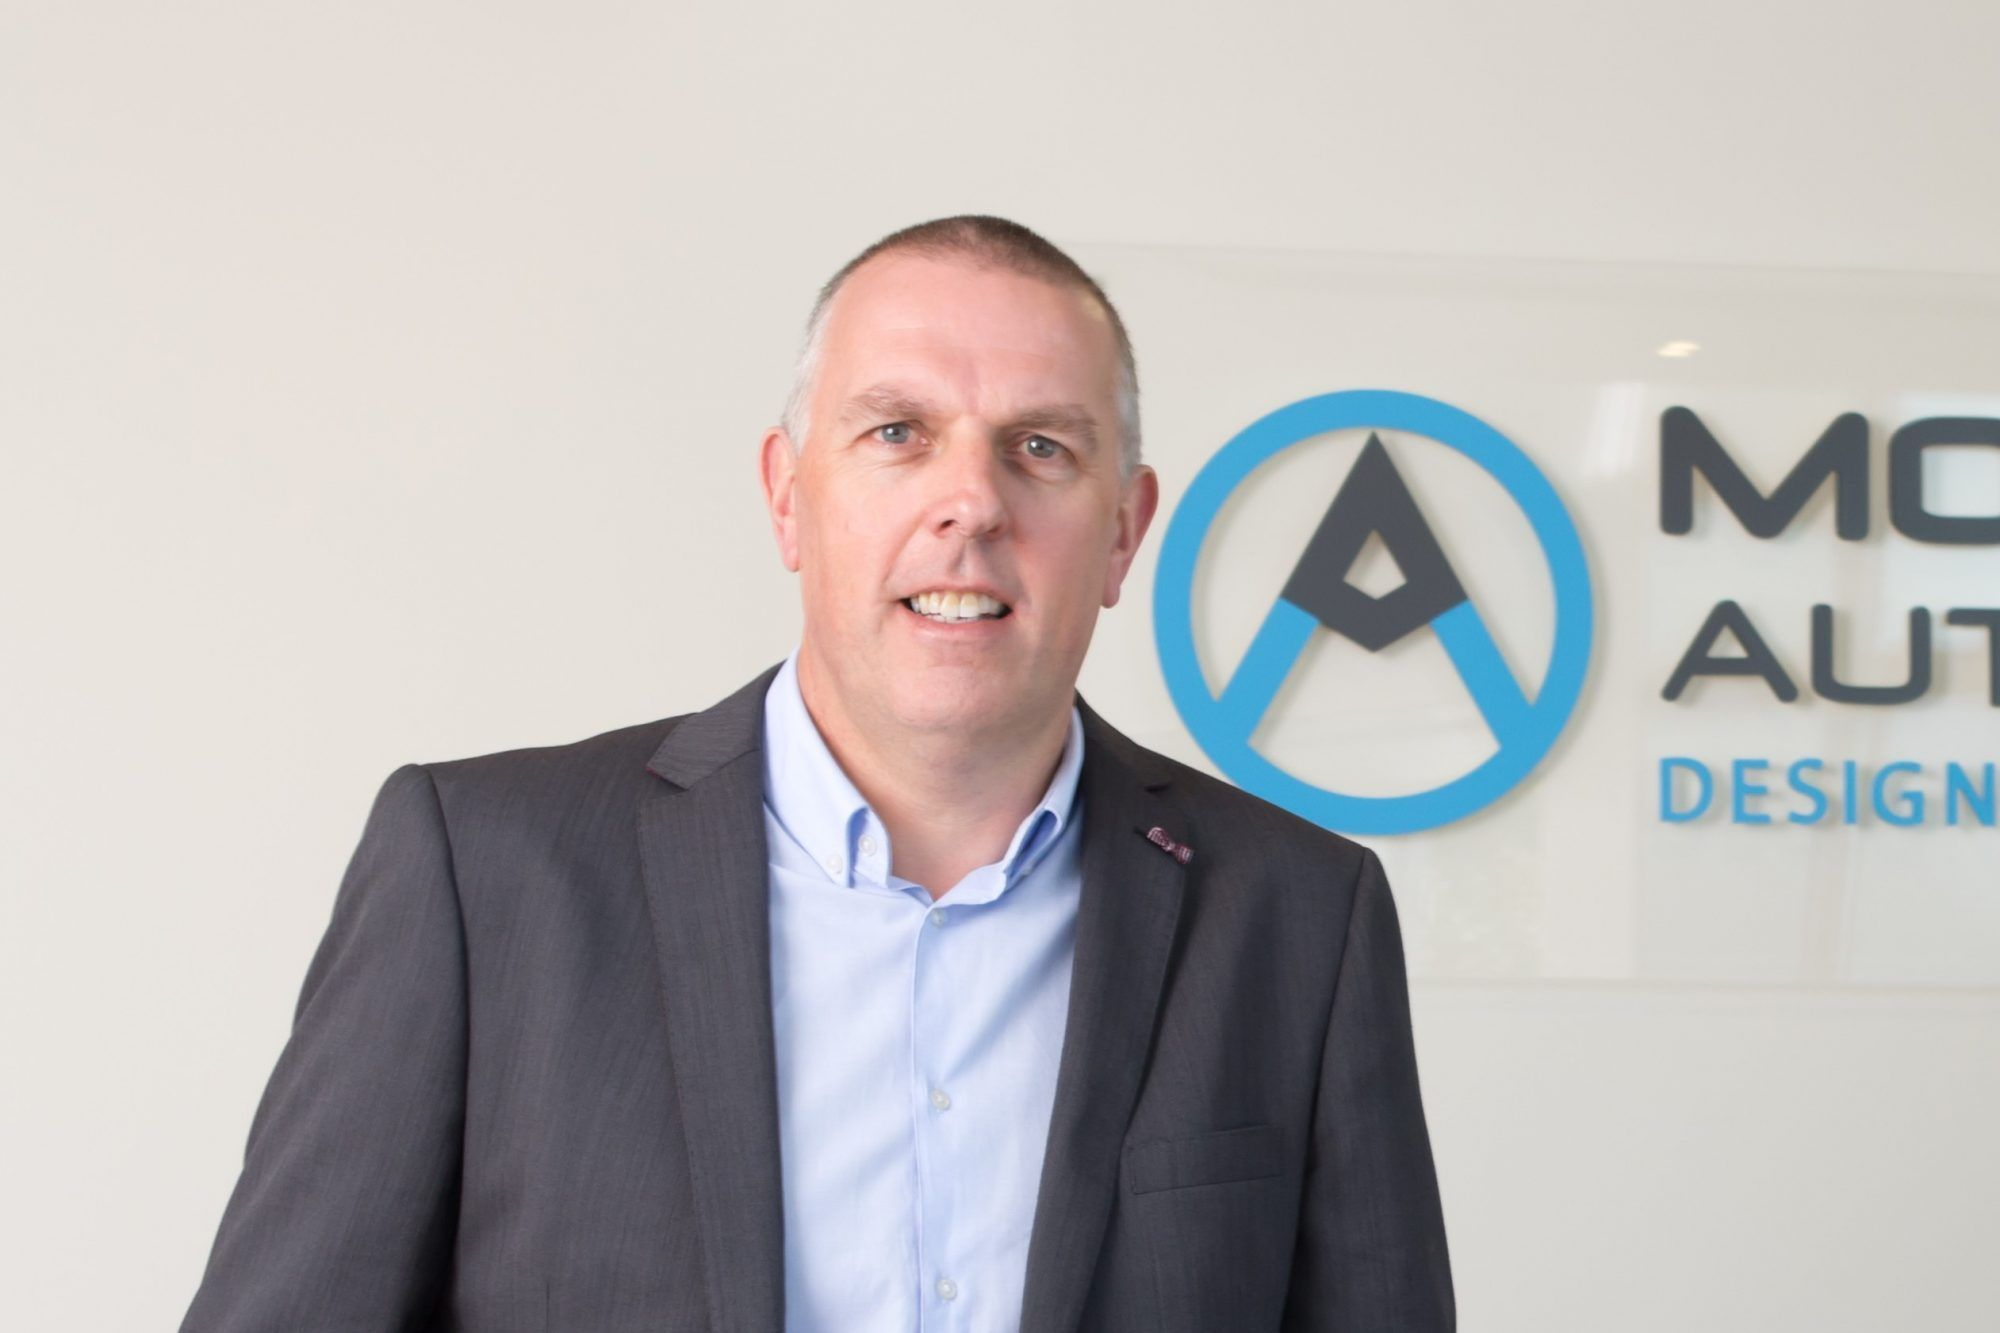 Shane Quilligan, Operations Manager of Modular Automation